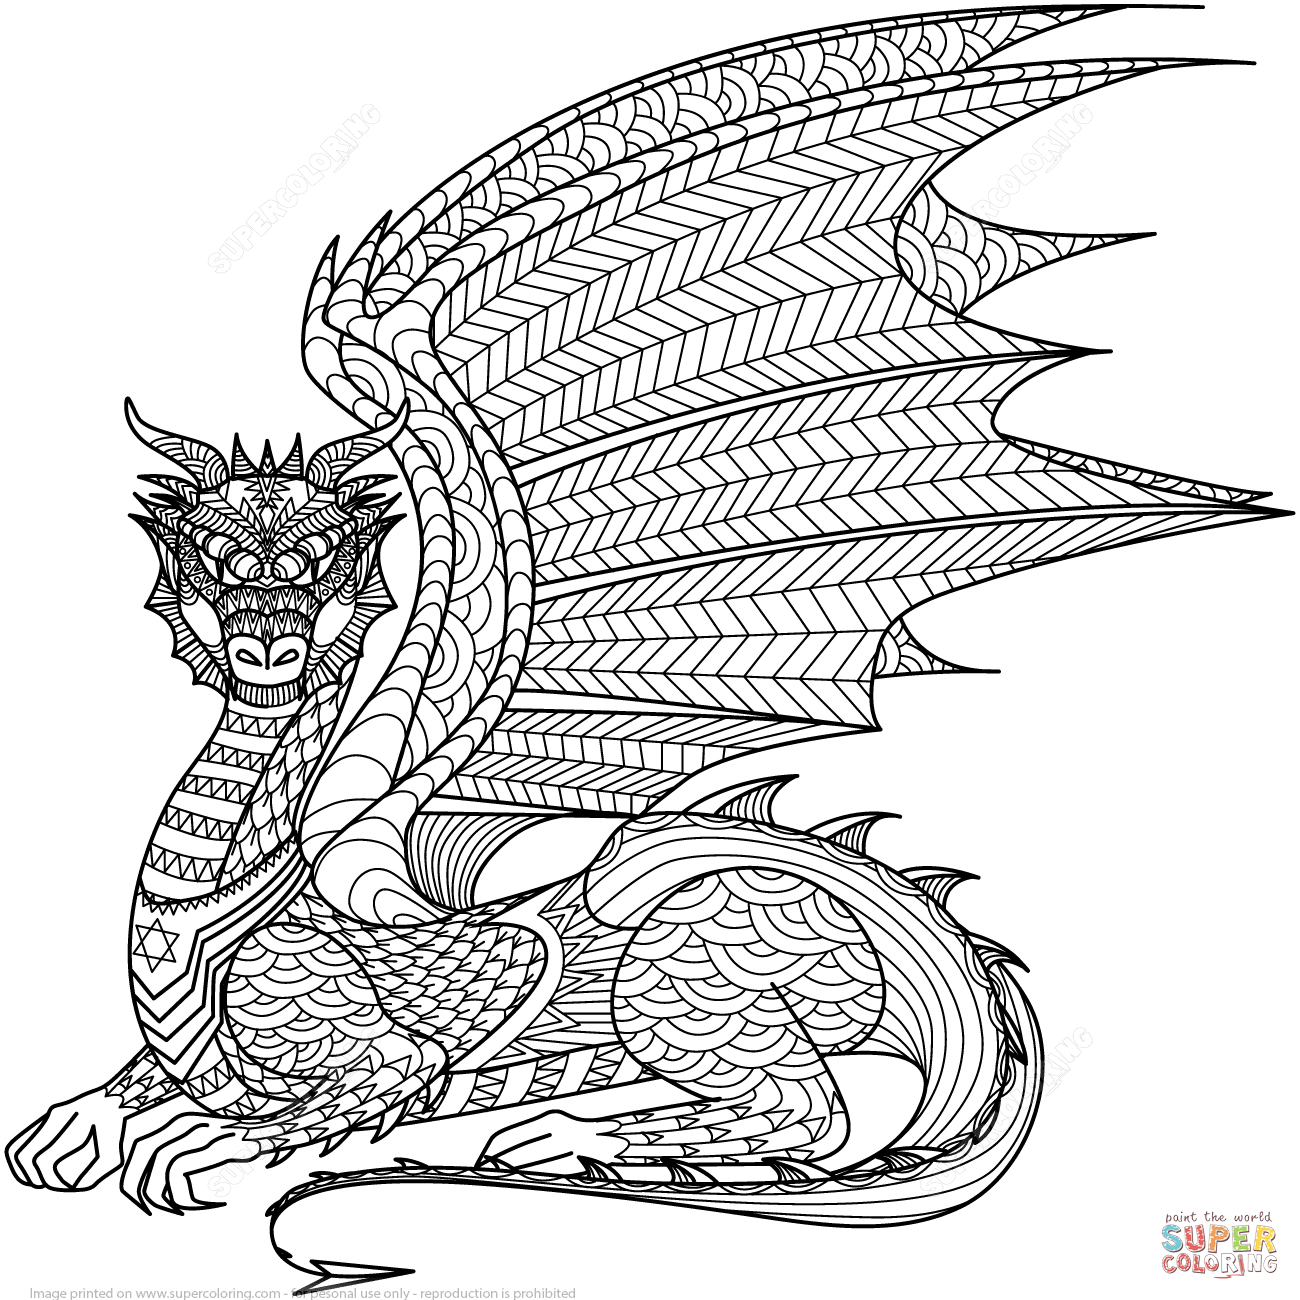 dragon zentangle coloring page free printable coloring pages - Zentangle Coloring Pages